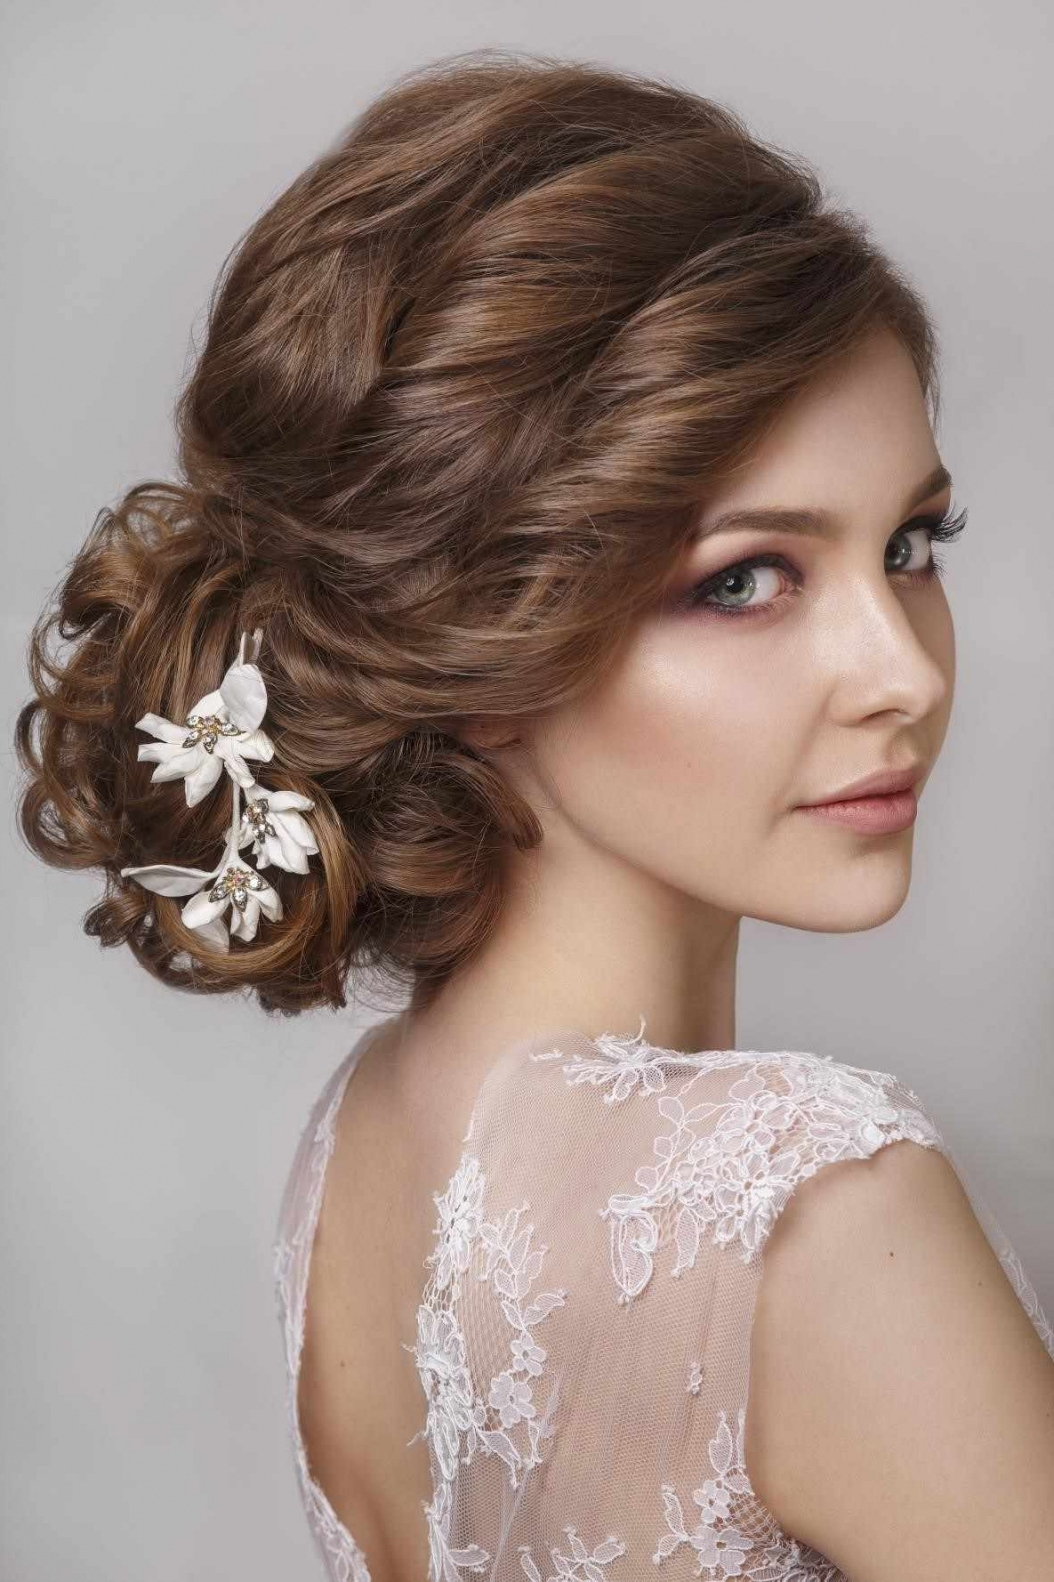 Fashionable Wedding Hairstyles For Round Face In Ideas Of Bridal Hairstyles For Round Faces Nice Ideas Weddingood (View 9 of 15)